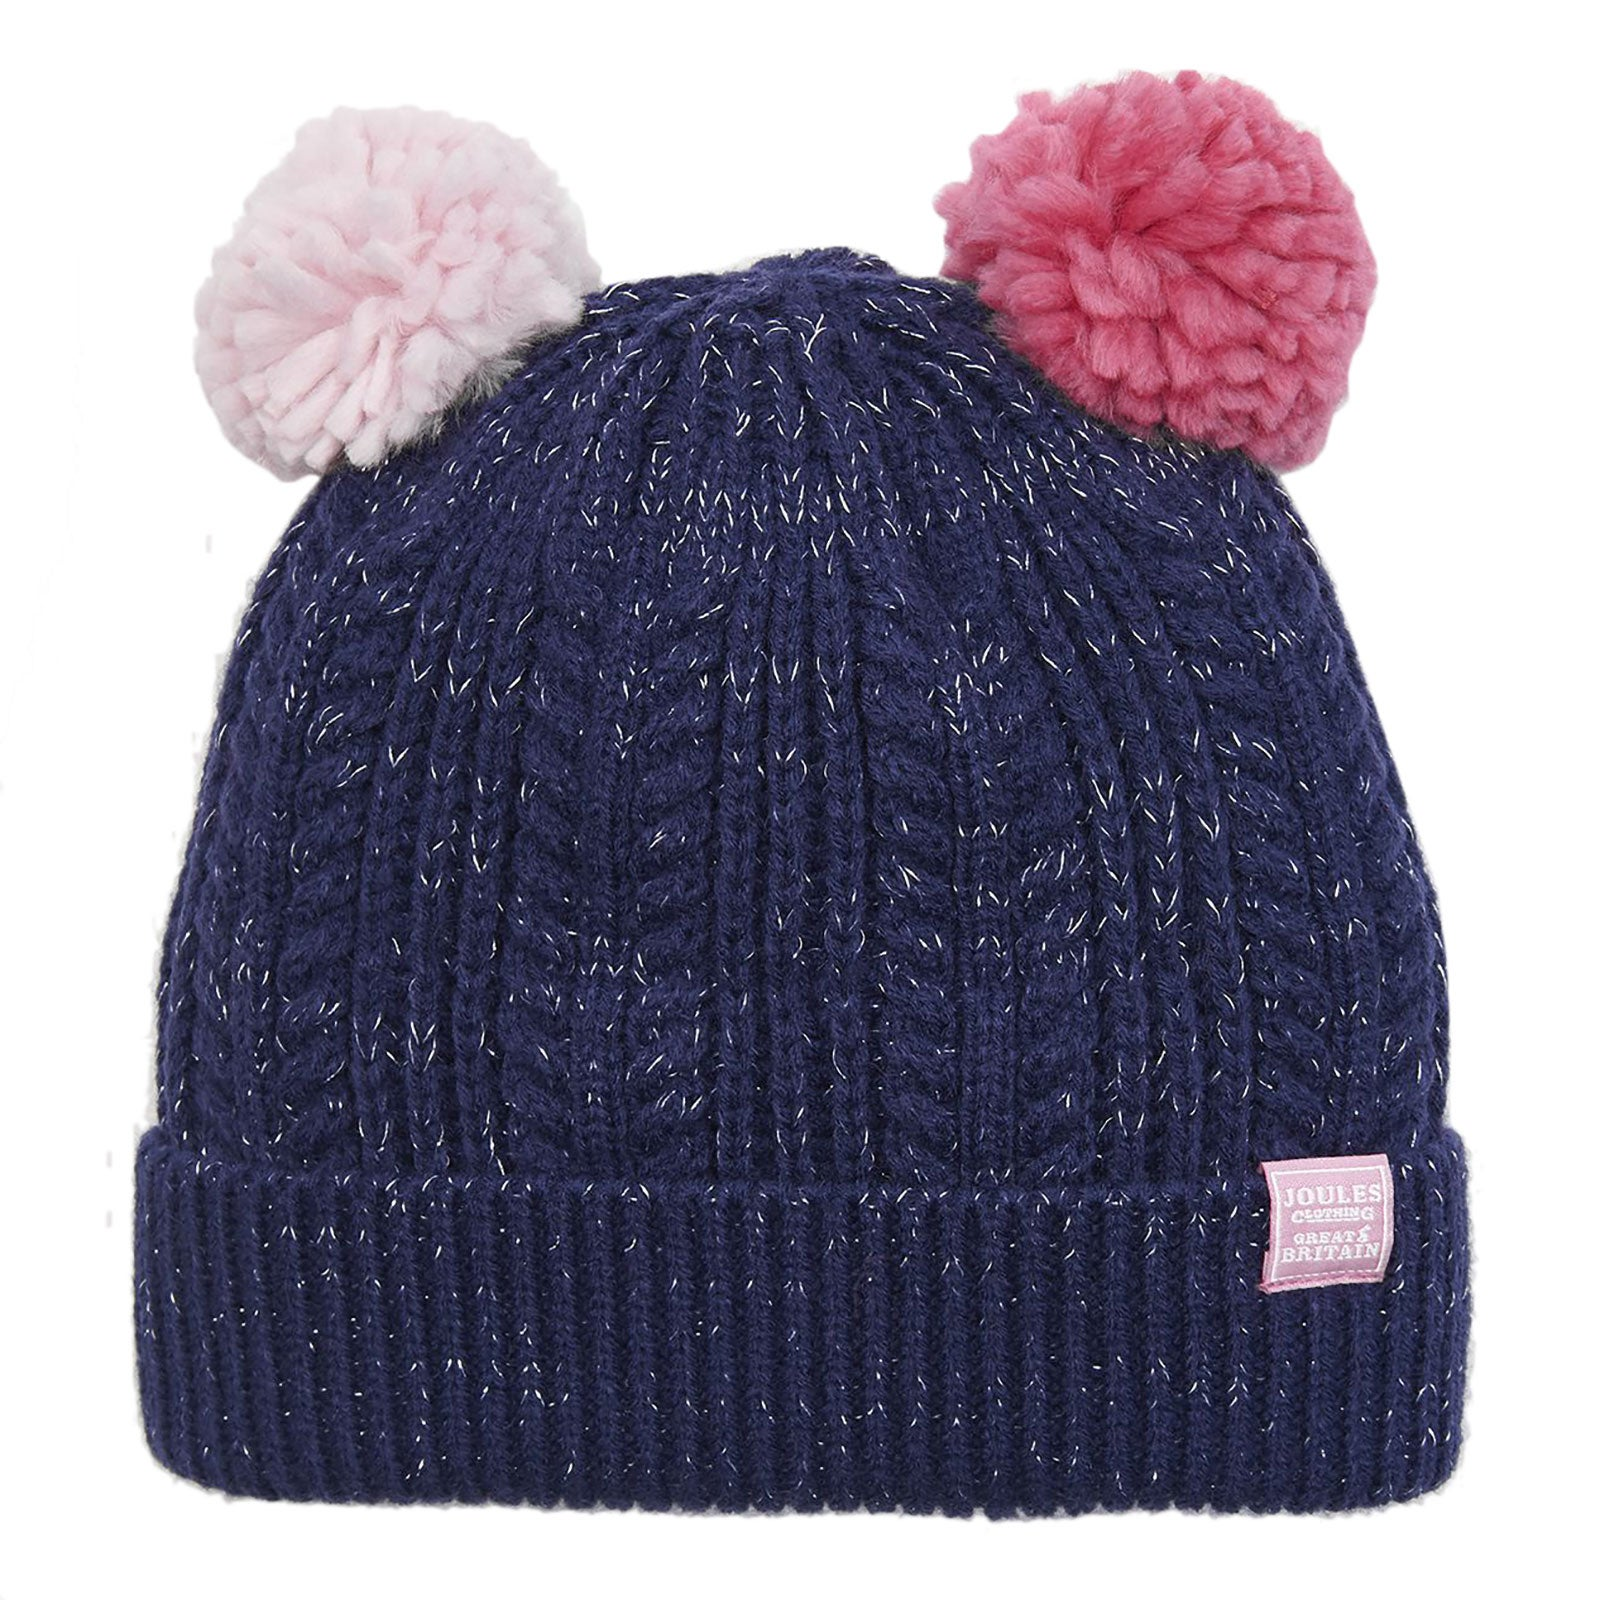 cdf7dbed749 Joules Ailsa Double Pom Girls Headwear Hat - Navy All Sizes